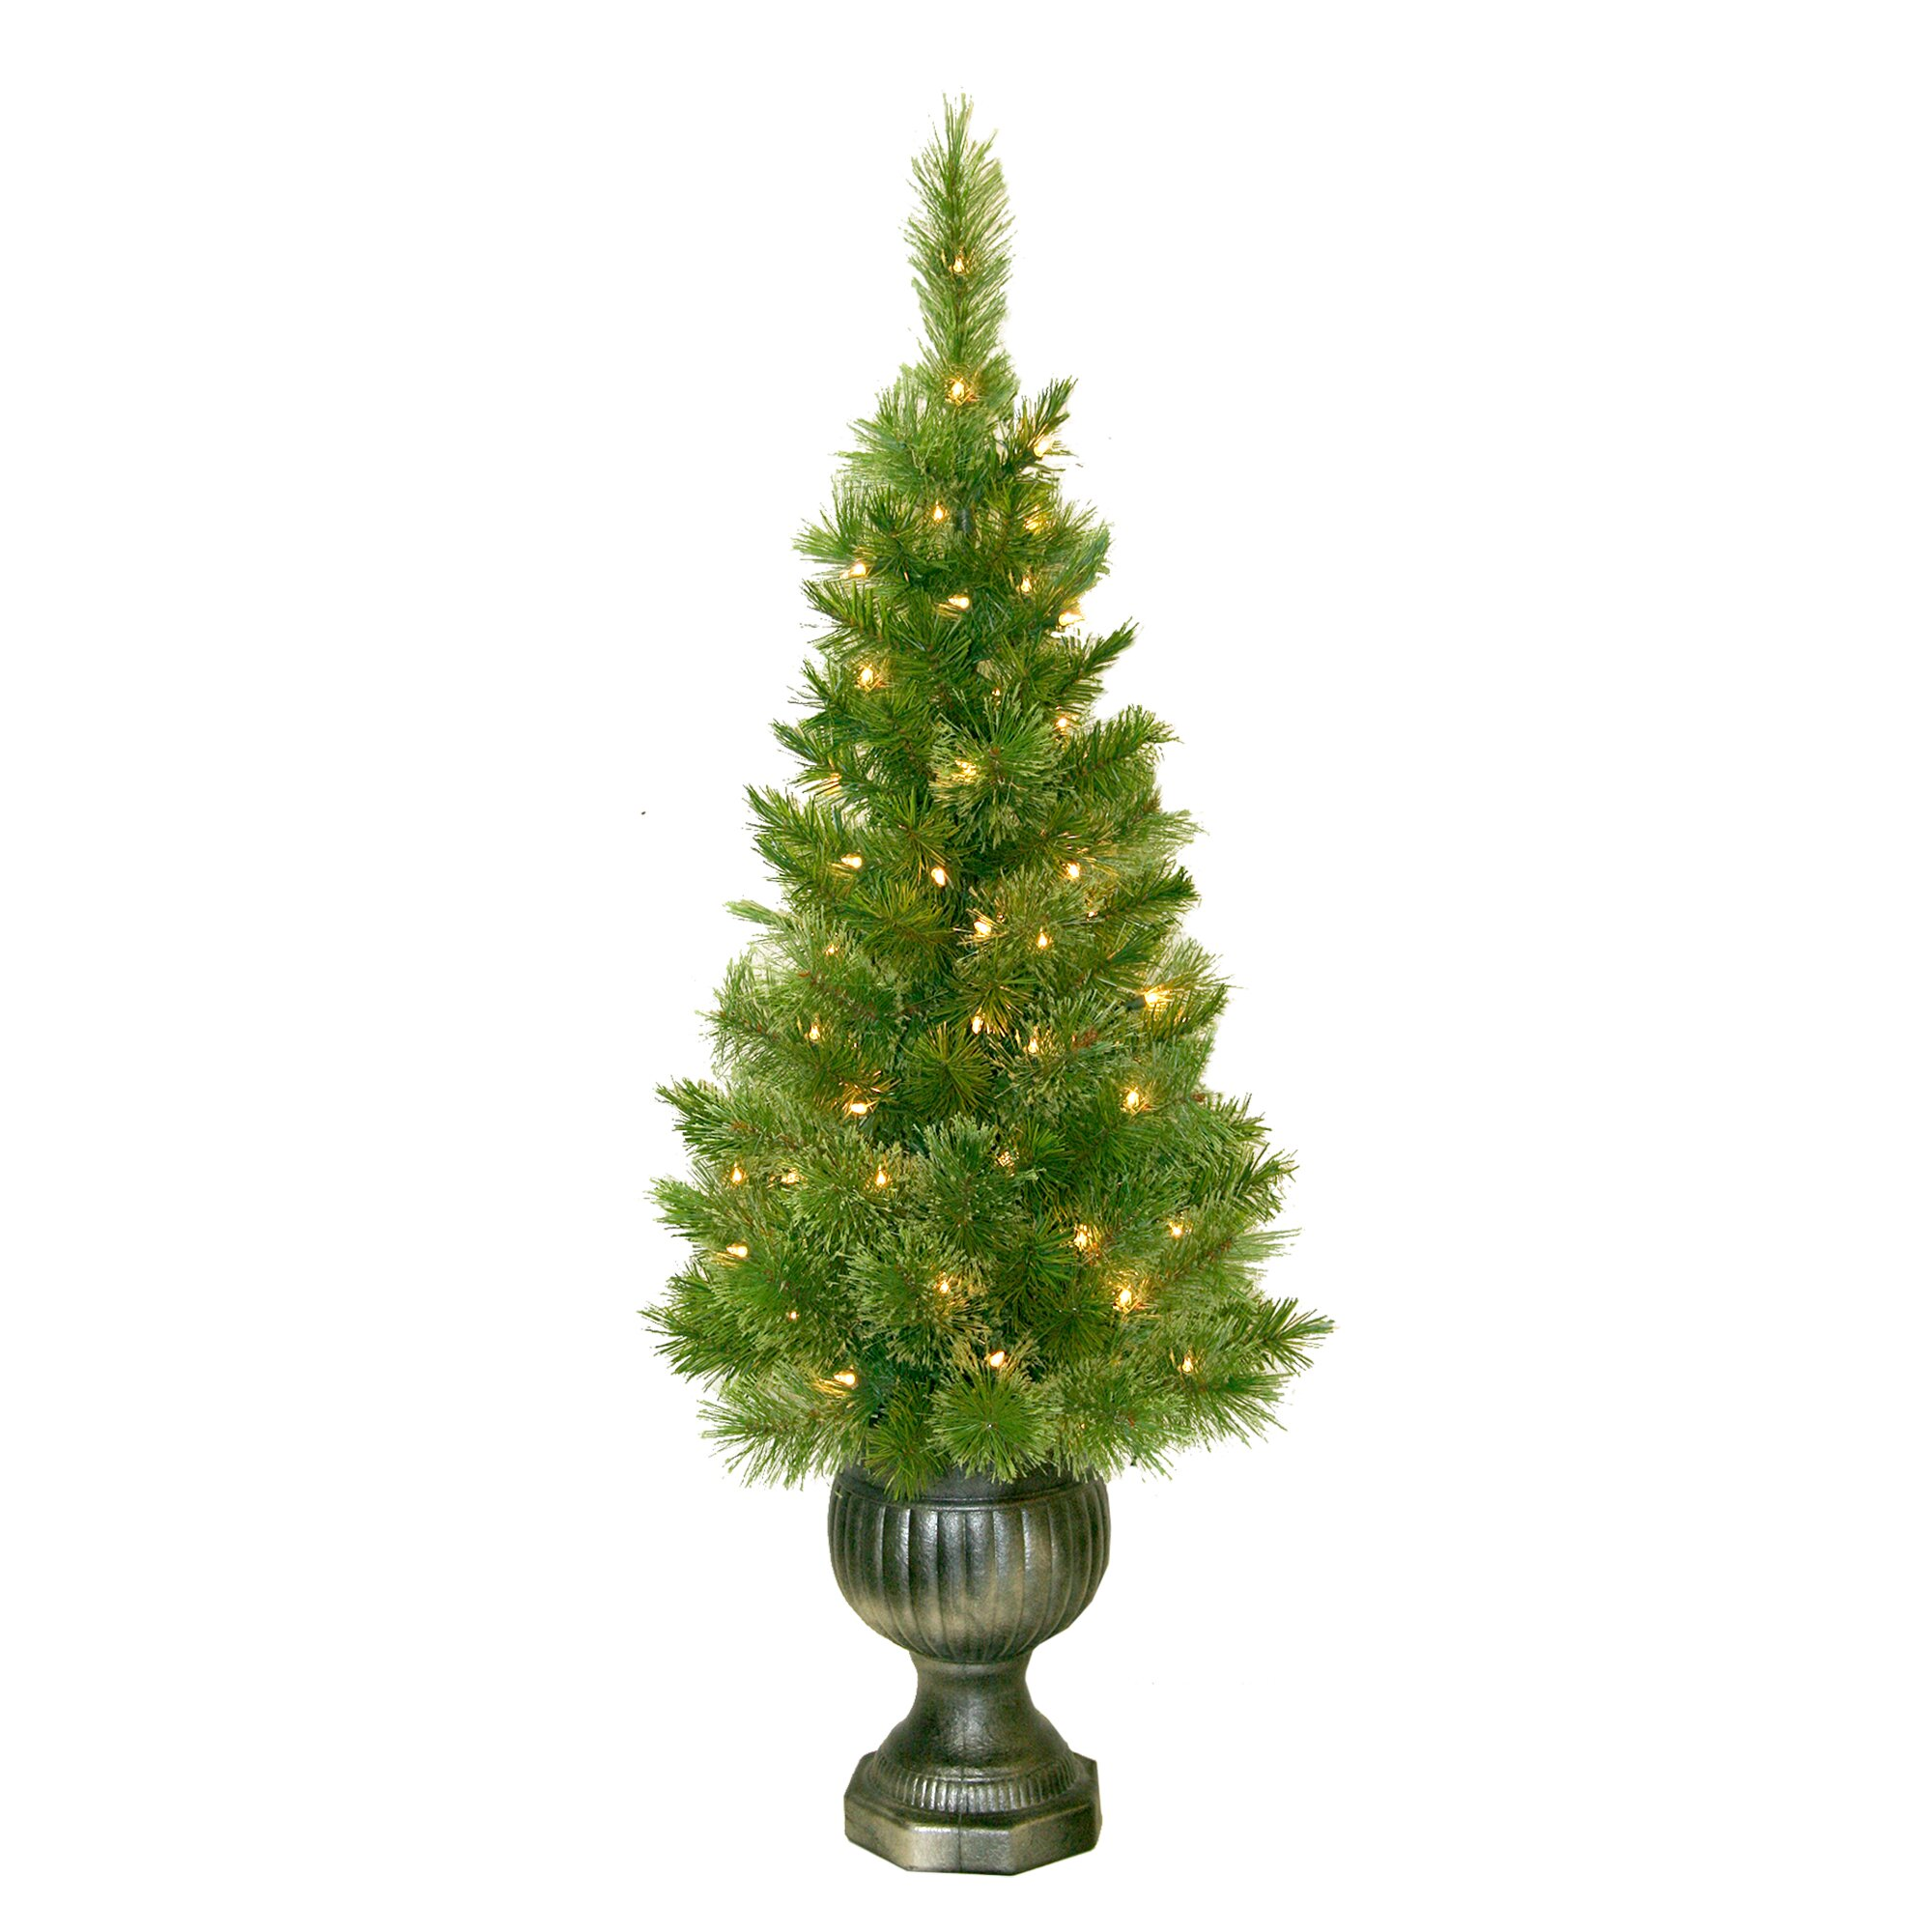 Slim white christmas tree with lights - 4 Potted Sheridan Pine Entryway Christmas Tree With 50 Clear Lights